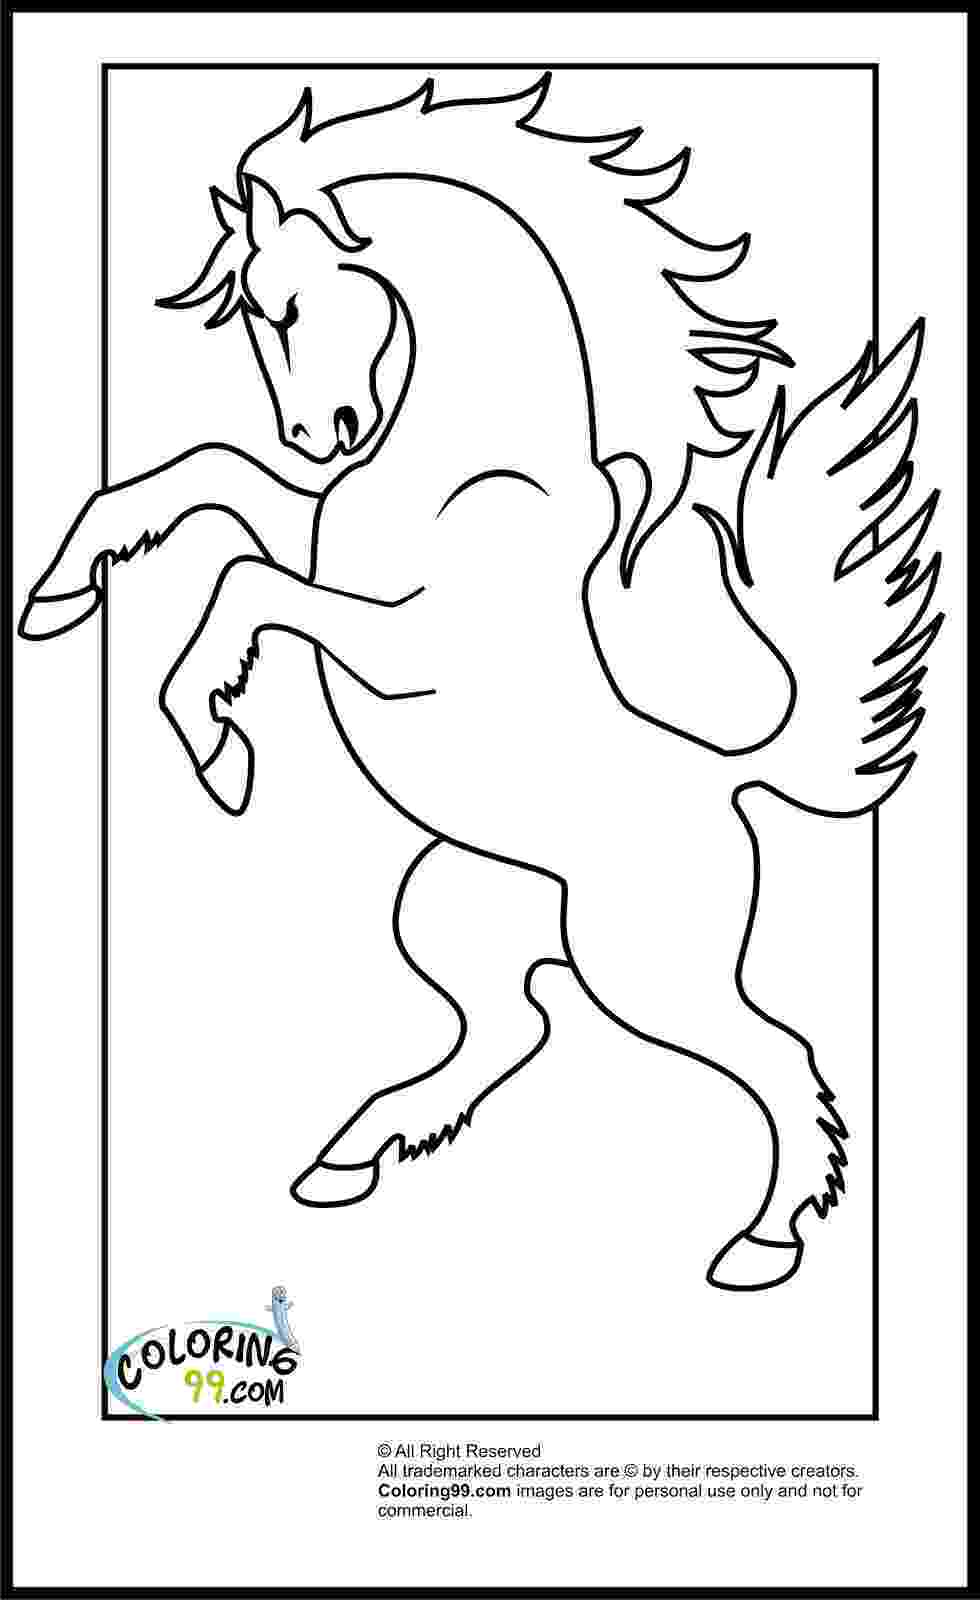 colouring horse coloring pages of horse to print 015 colouring horse